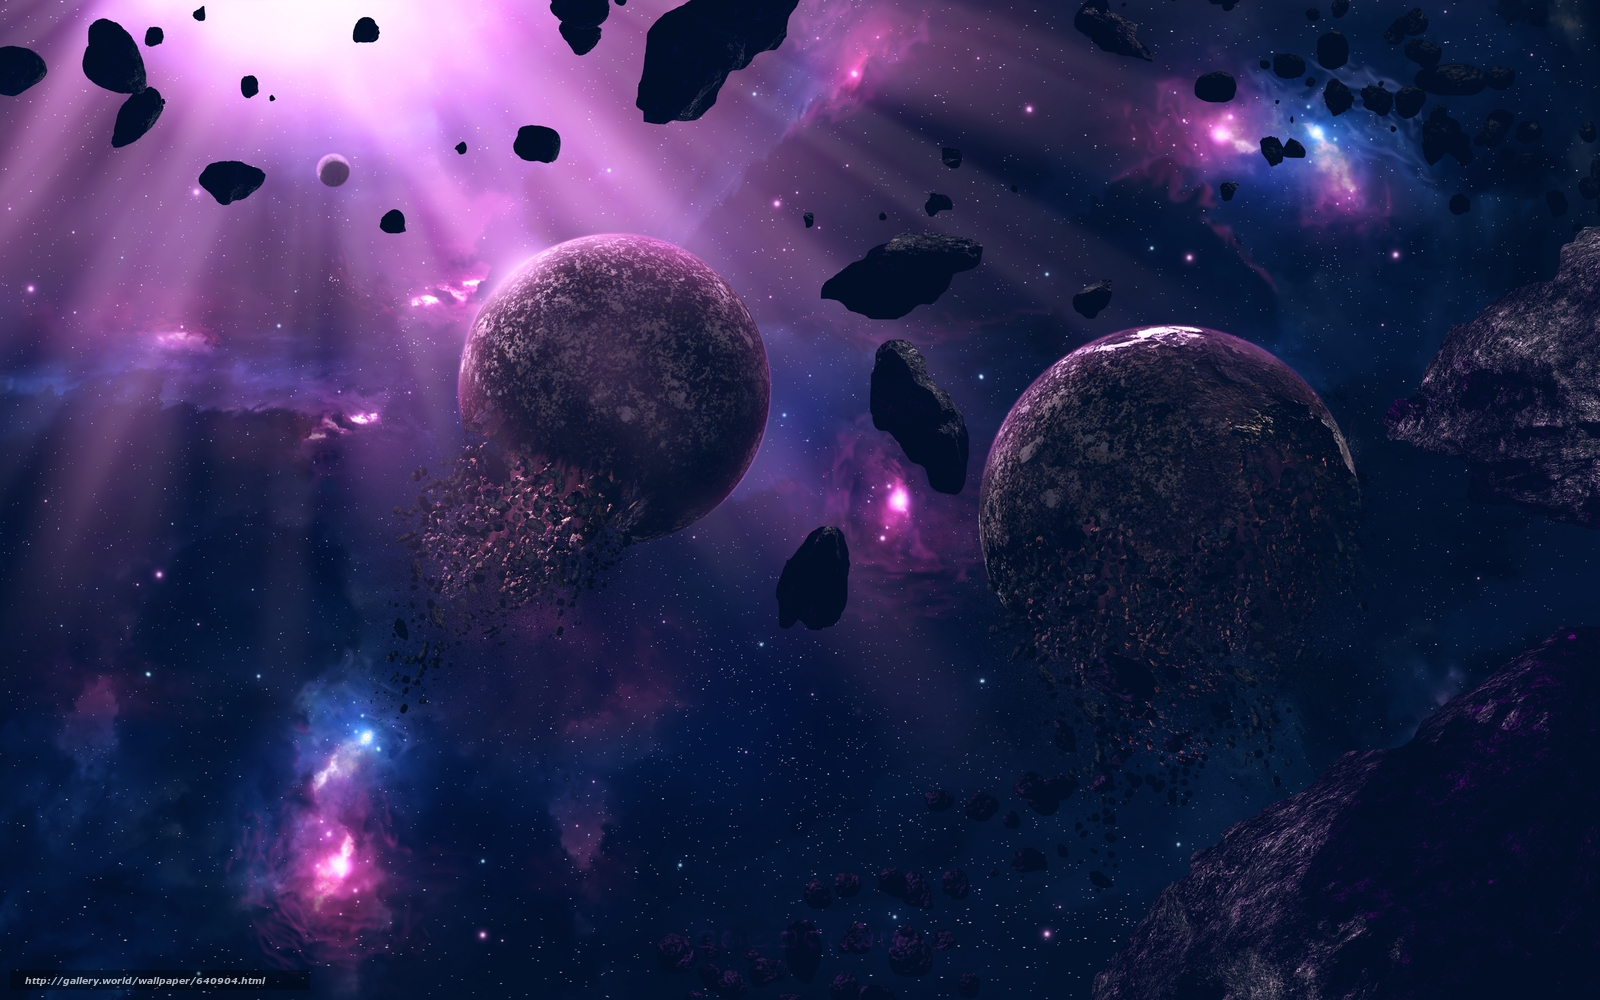 Download wallpaper space planet 3d art free desktop for Space blast 3d